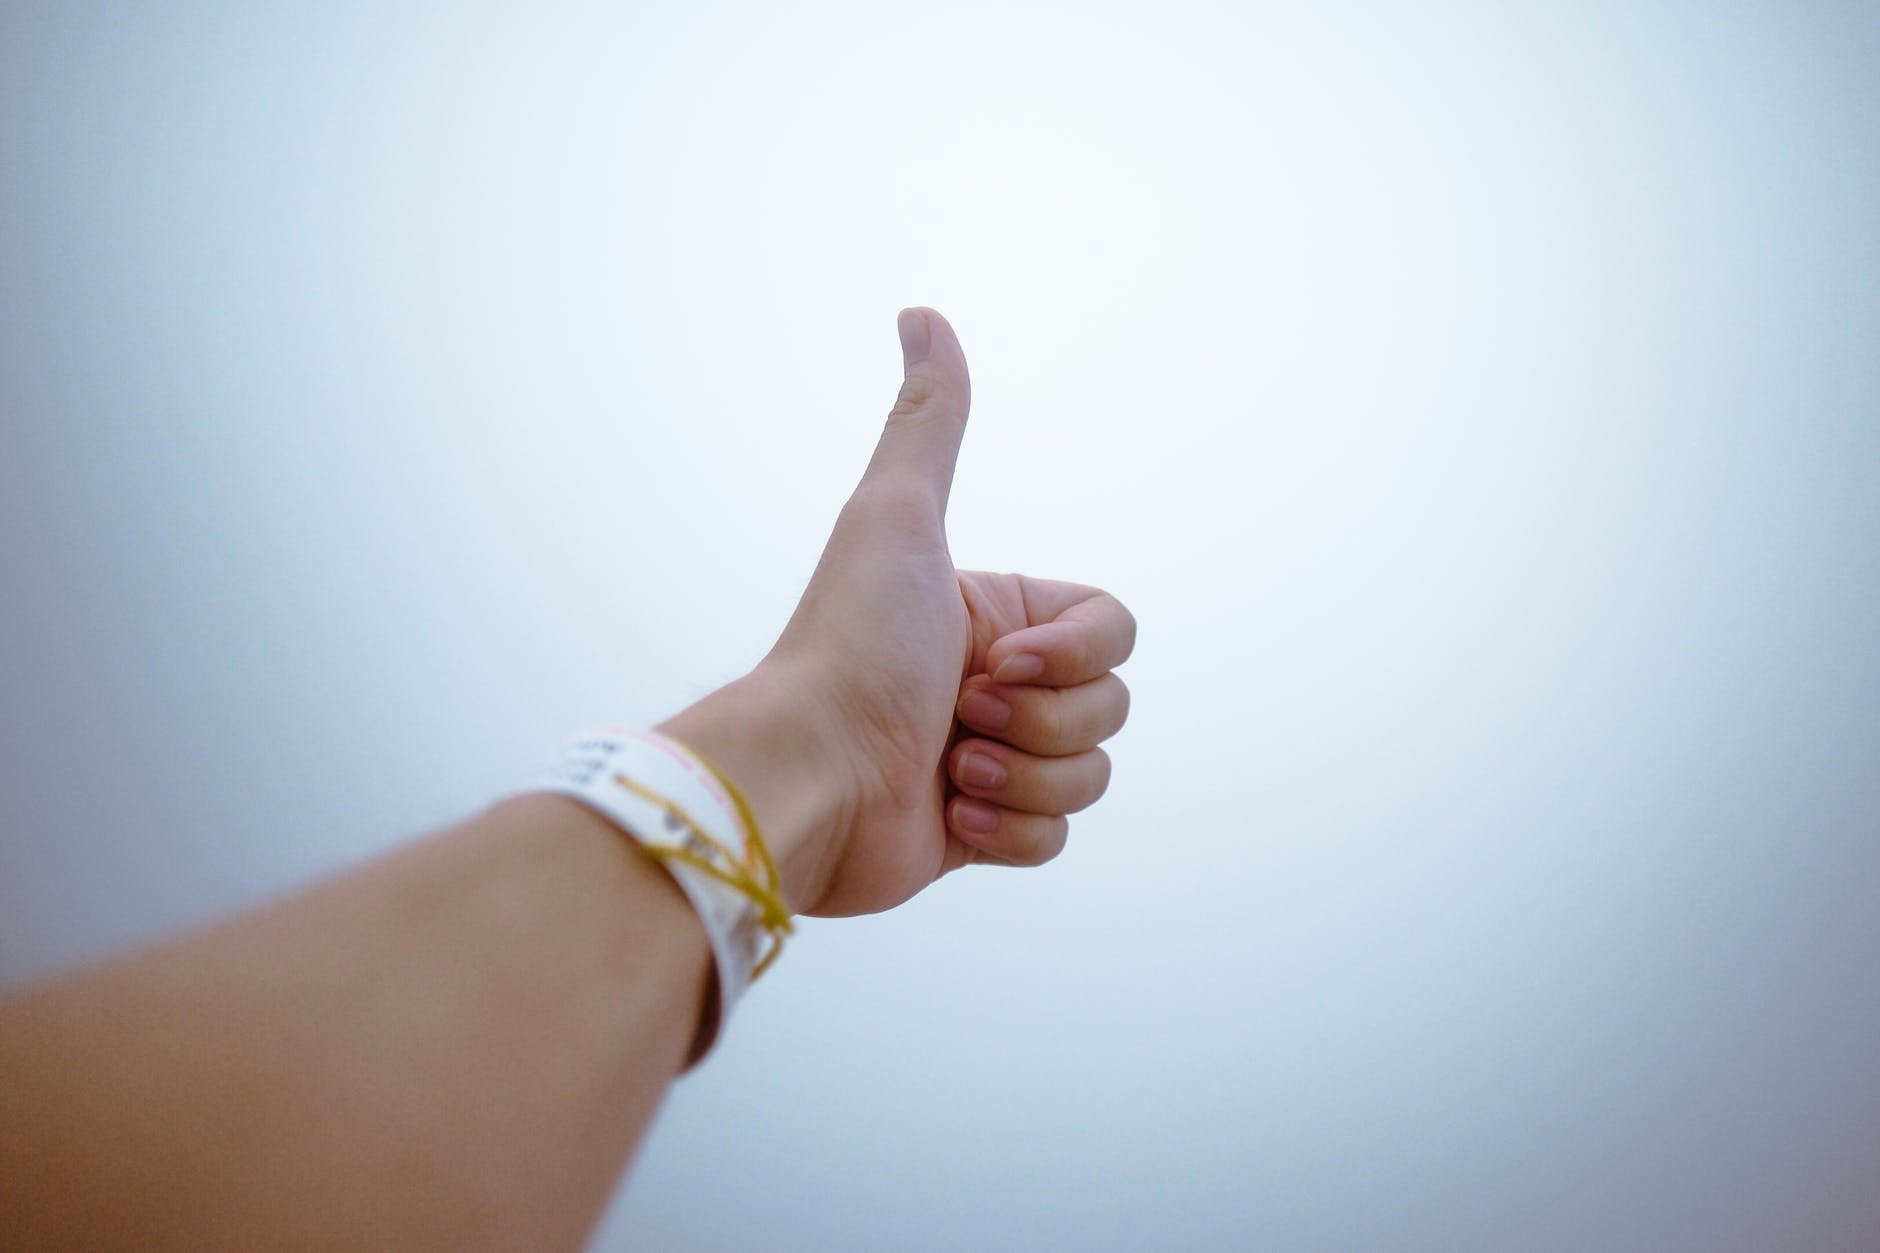 """The photo is taken from the perspective of a person looking at their arm, stretched out in front of them with their thumb extended upward and their fingers curled into their palm, in a """"thumbs up"""" sign."""